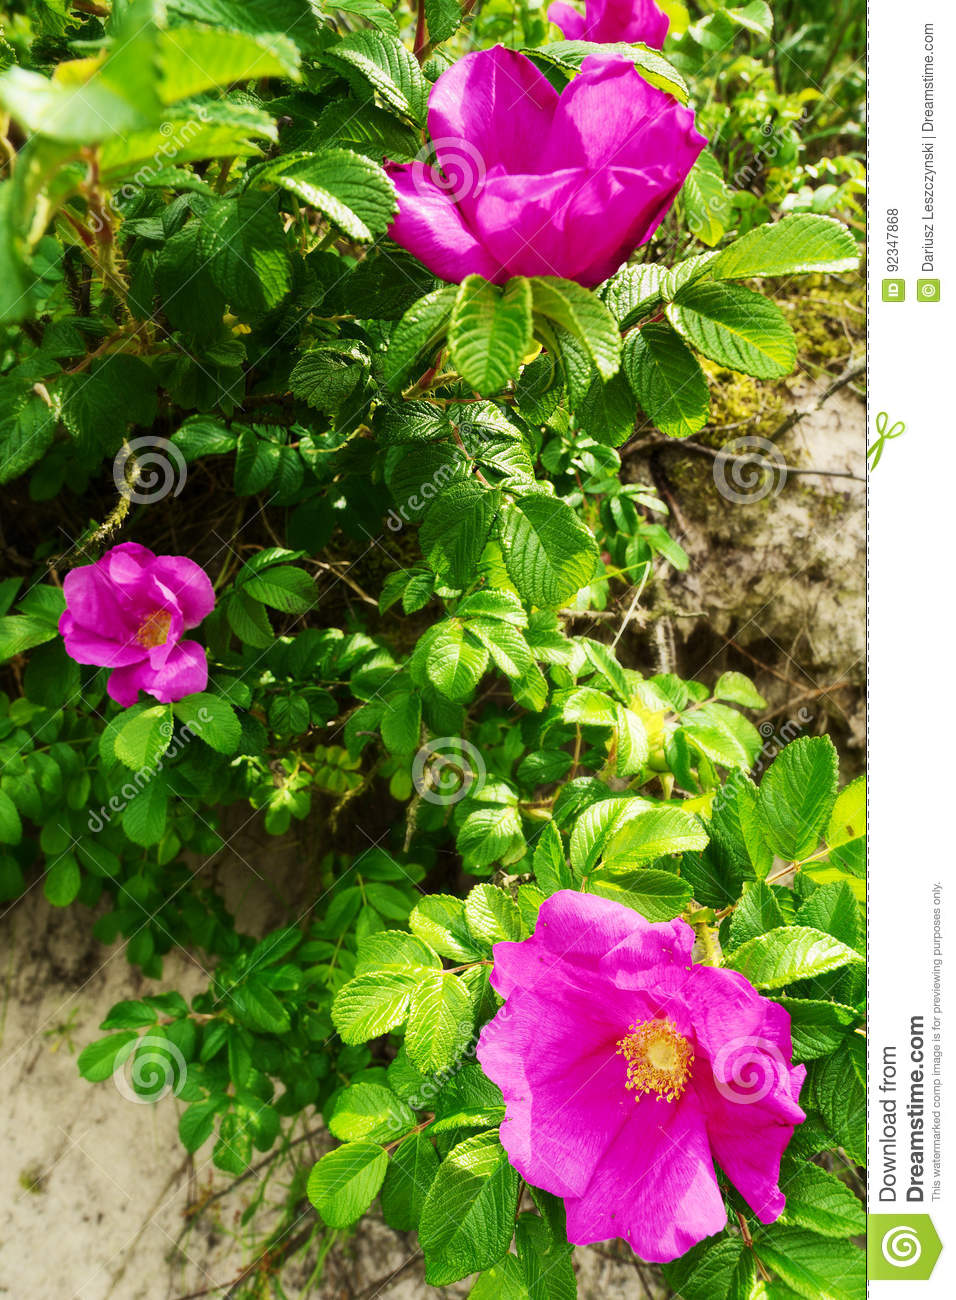 Pink Blooming Flowers Of Climbing Rosa Canina Shrub Commonly Known